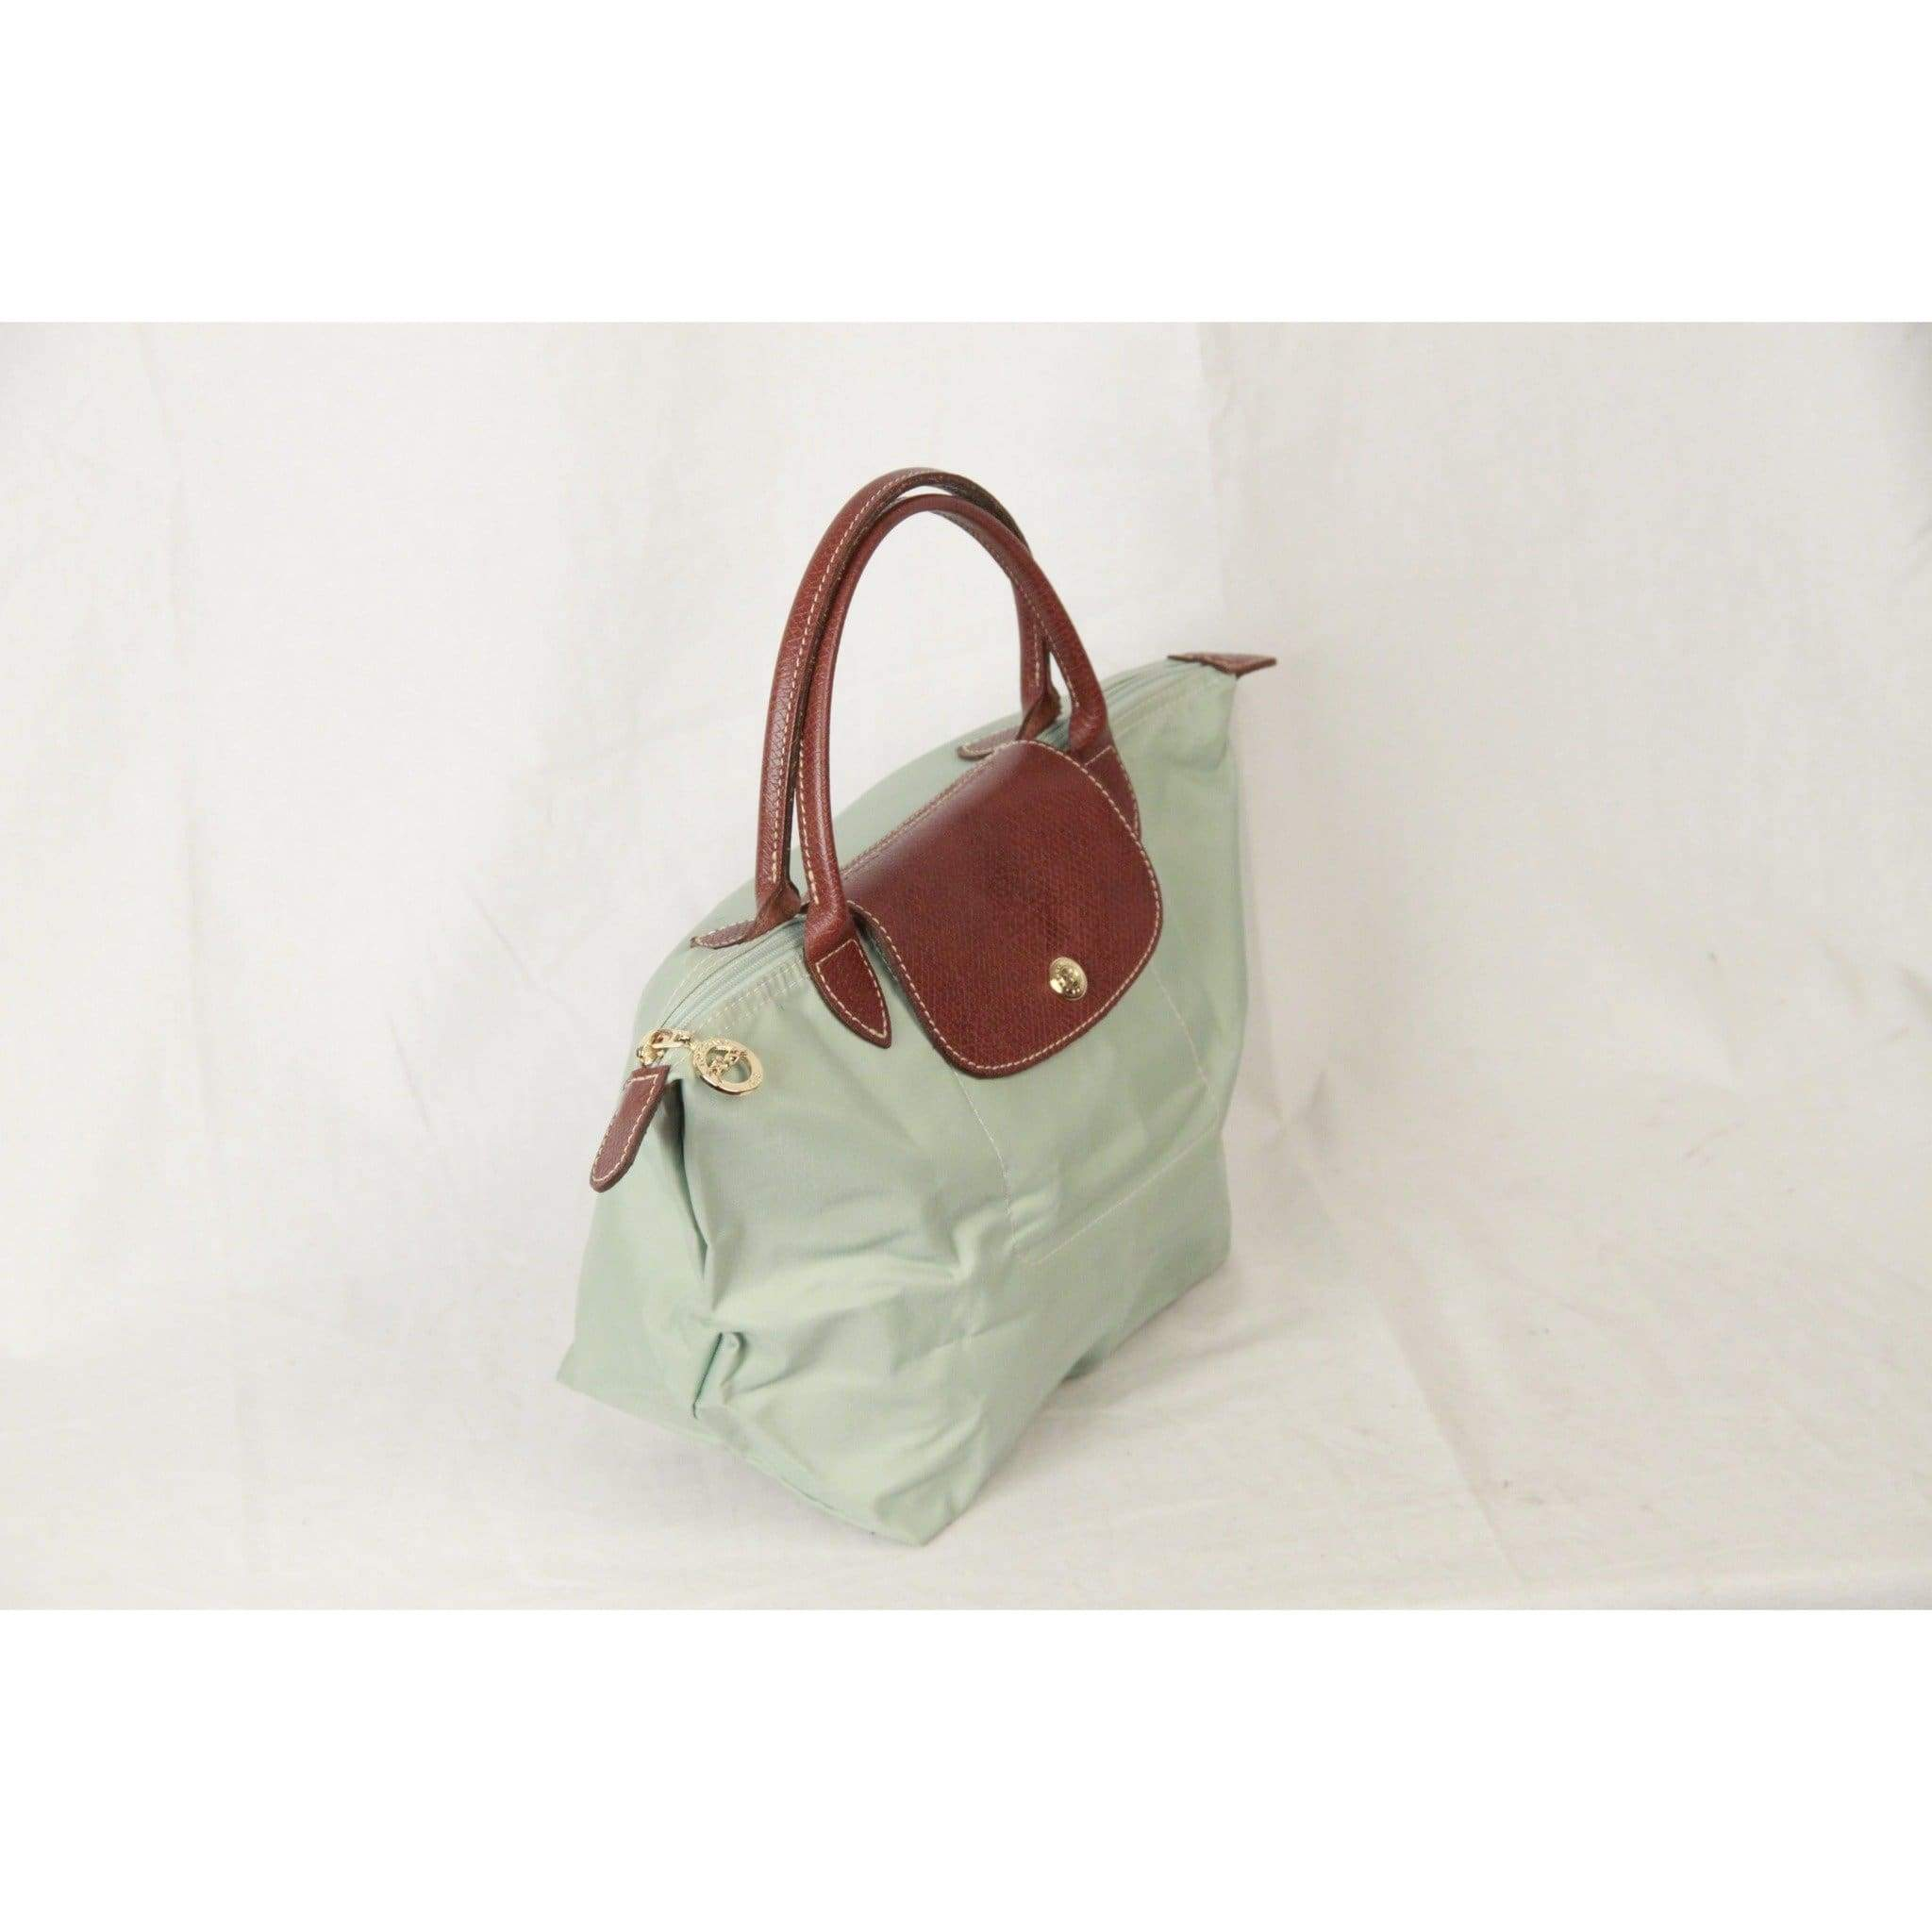 e1f4900dd5 Longchamp Paris Mint Canvas Le Pliage Bag Top Handles S Opherty & Ciocci